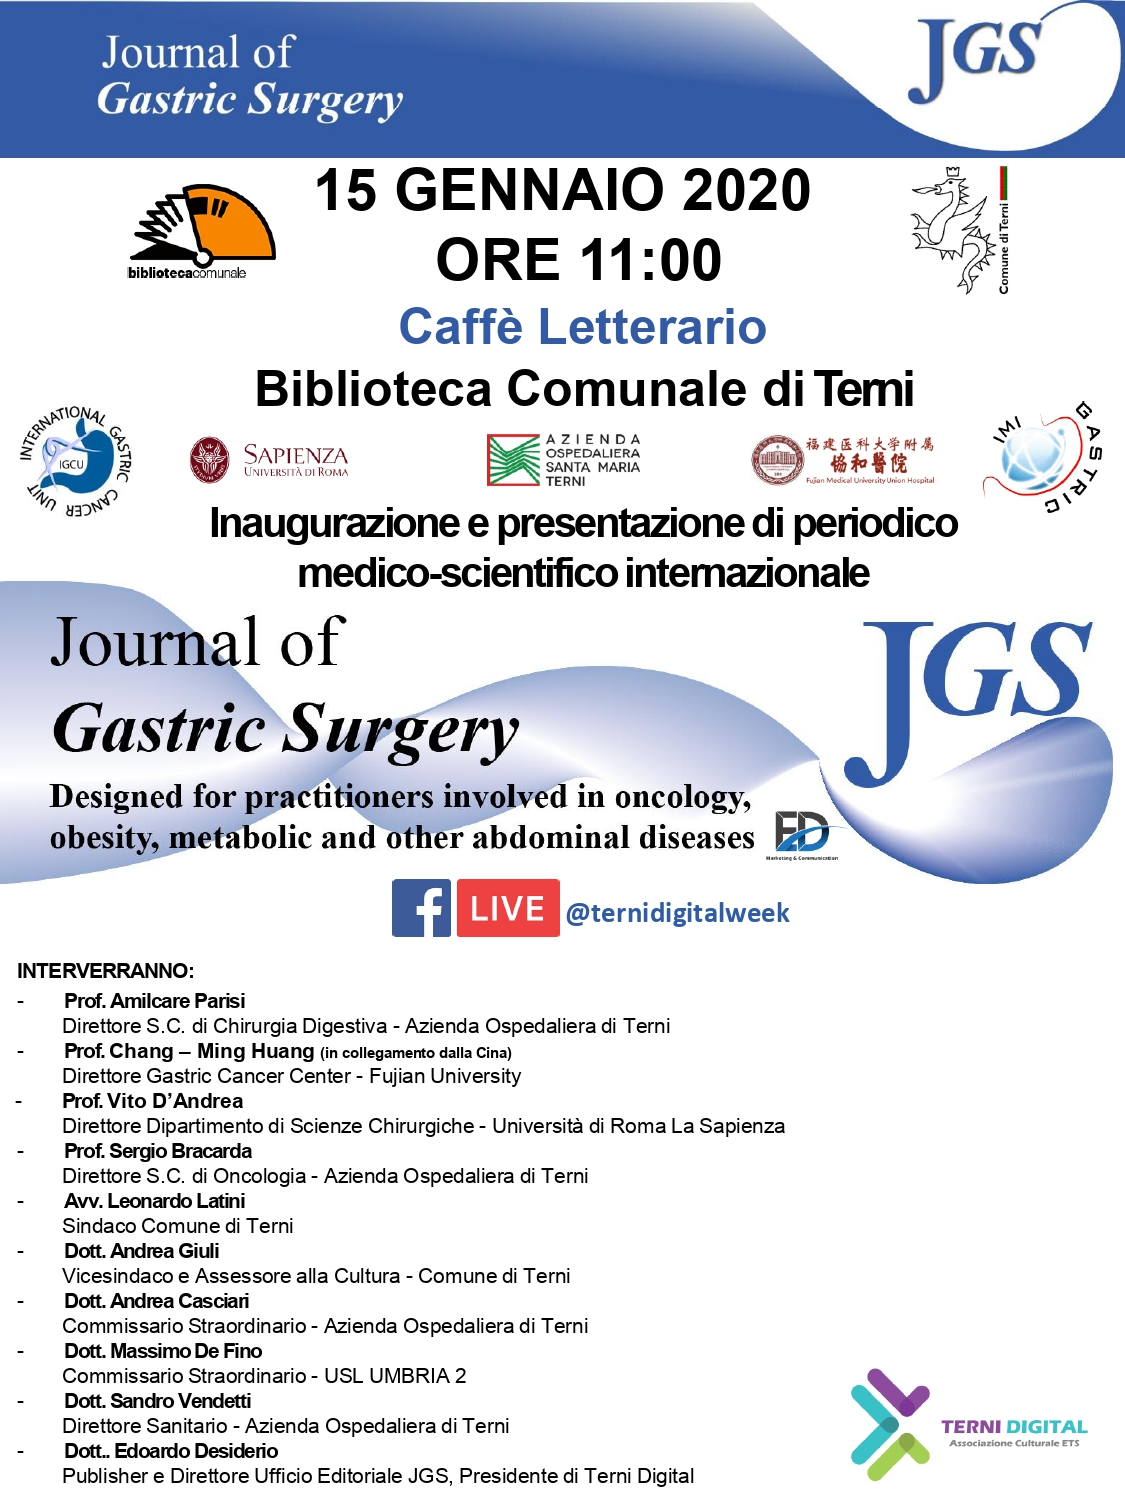 Presentazione del Journal of Gastric Surgery, l'innovativa rivista scientifica internazionale con sede a Terni